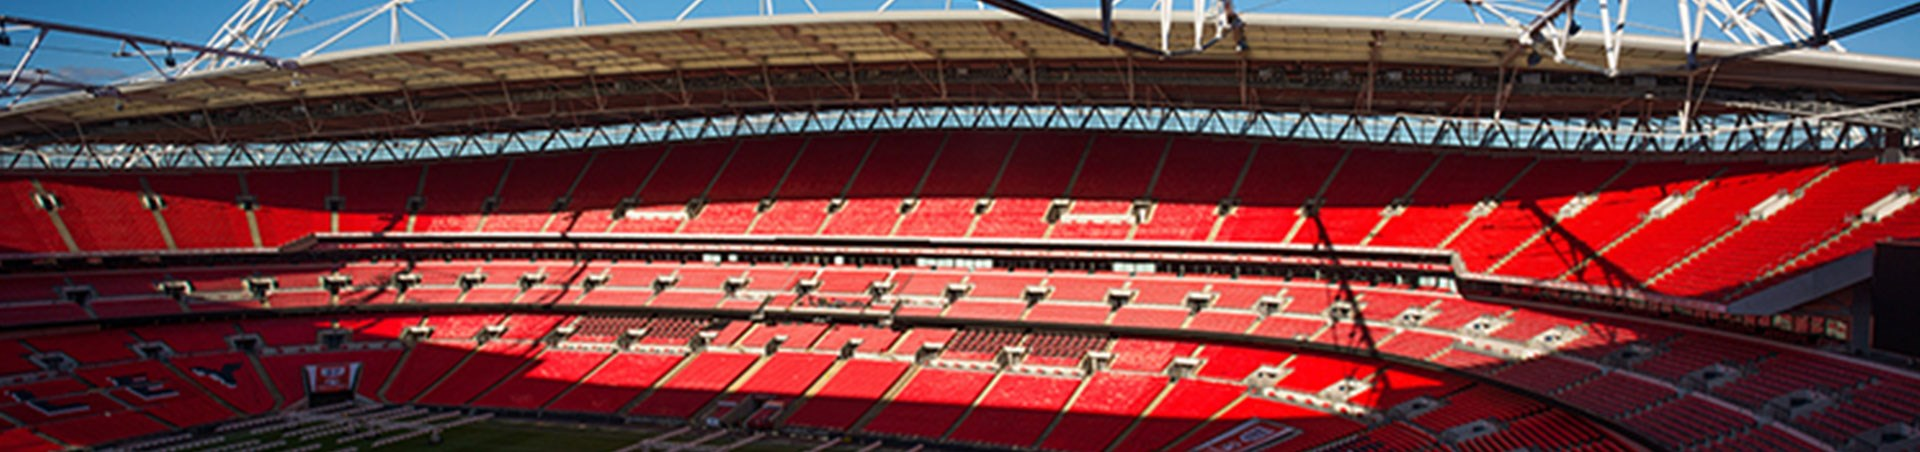 Travel to Wembley Stadium, London by coach from across the UK with National Express